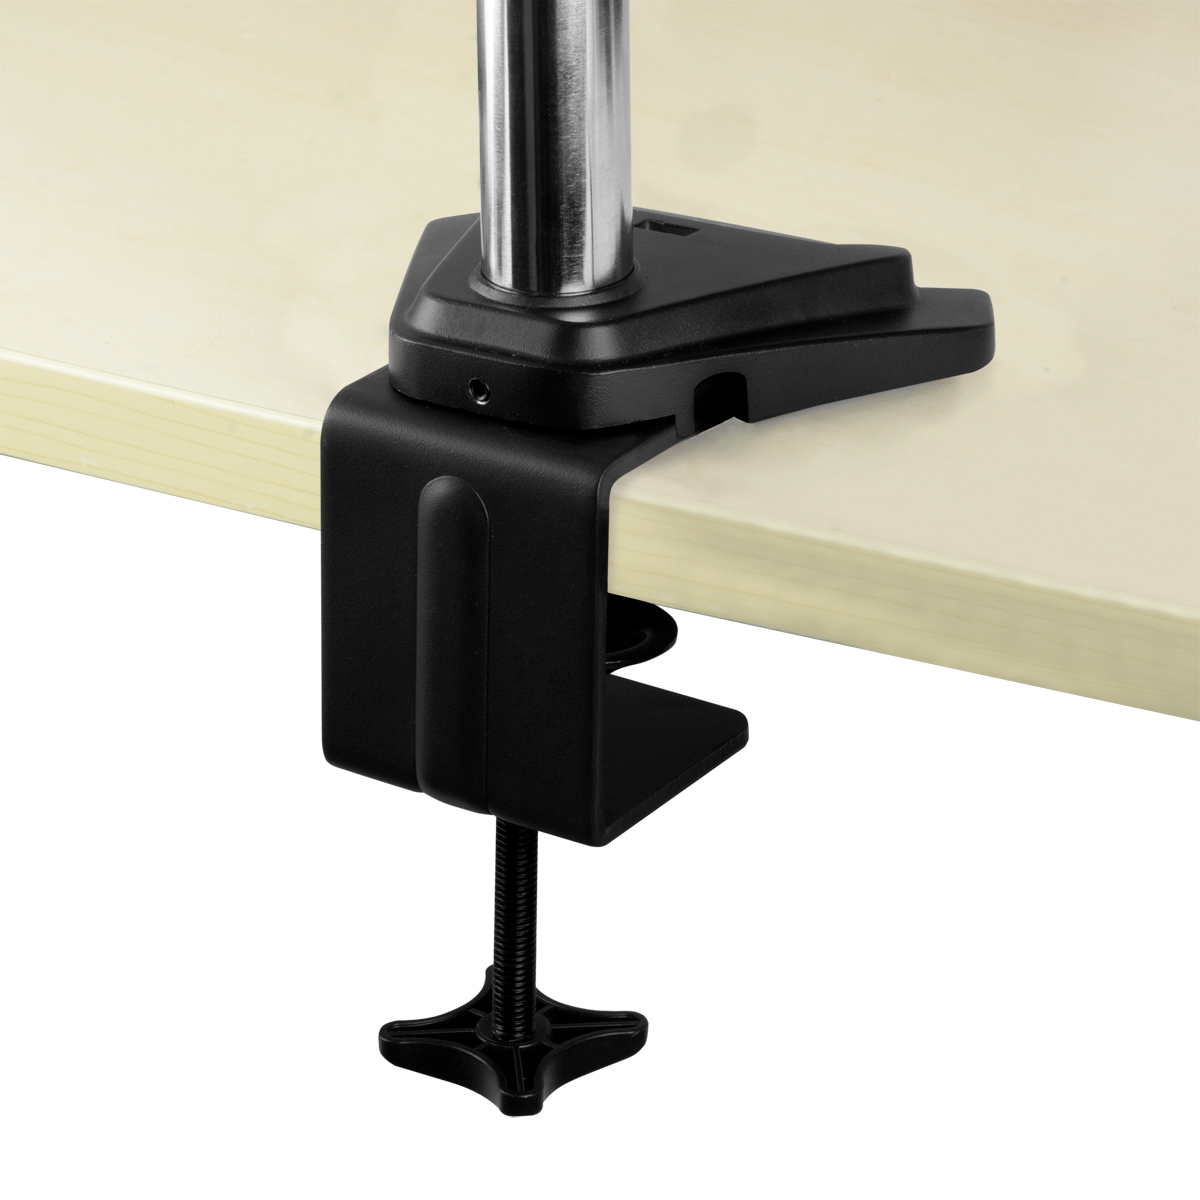 Desk Mount Gas Spring Dual Monitor Arm ARCTIC Z2-3D (Gen 3) Detail View Table Mounting Clamp Open